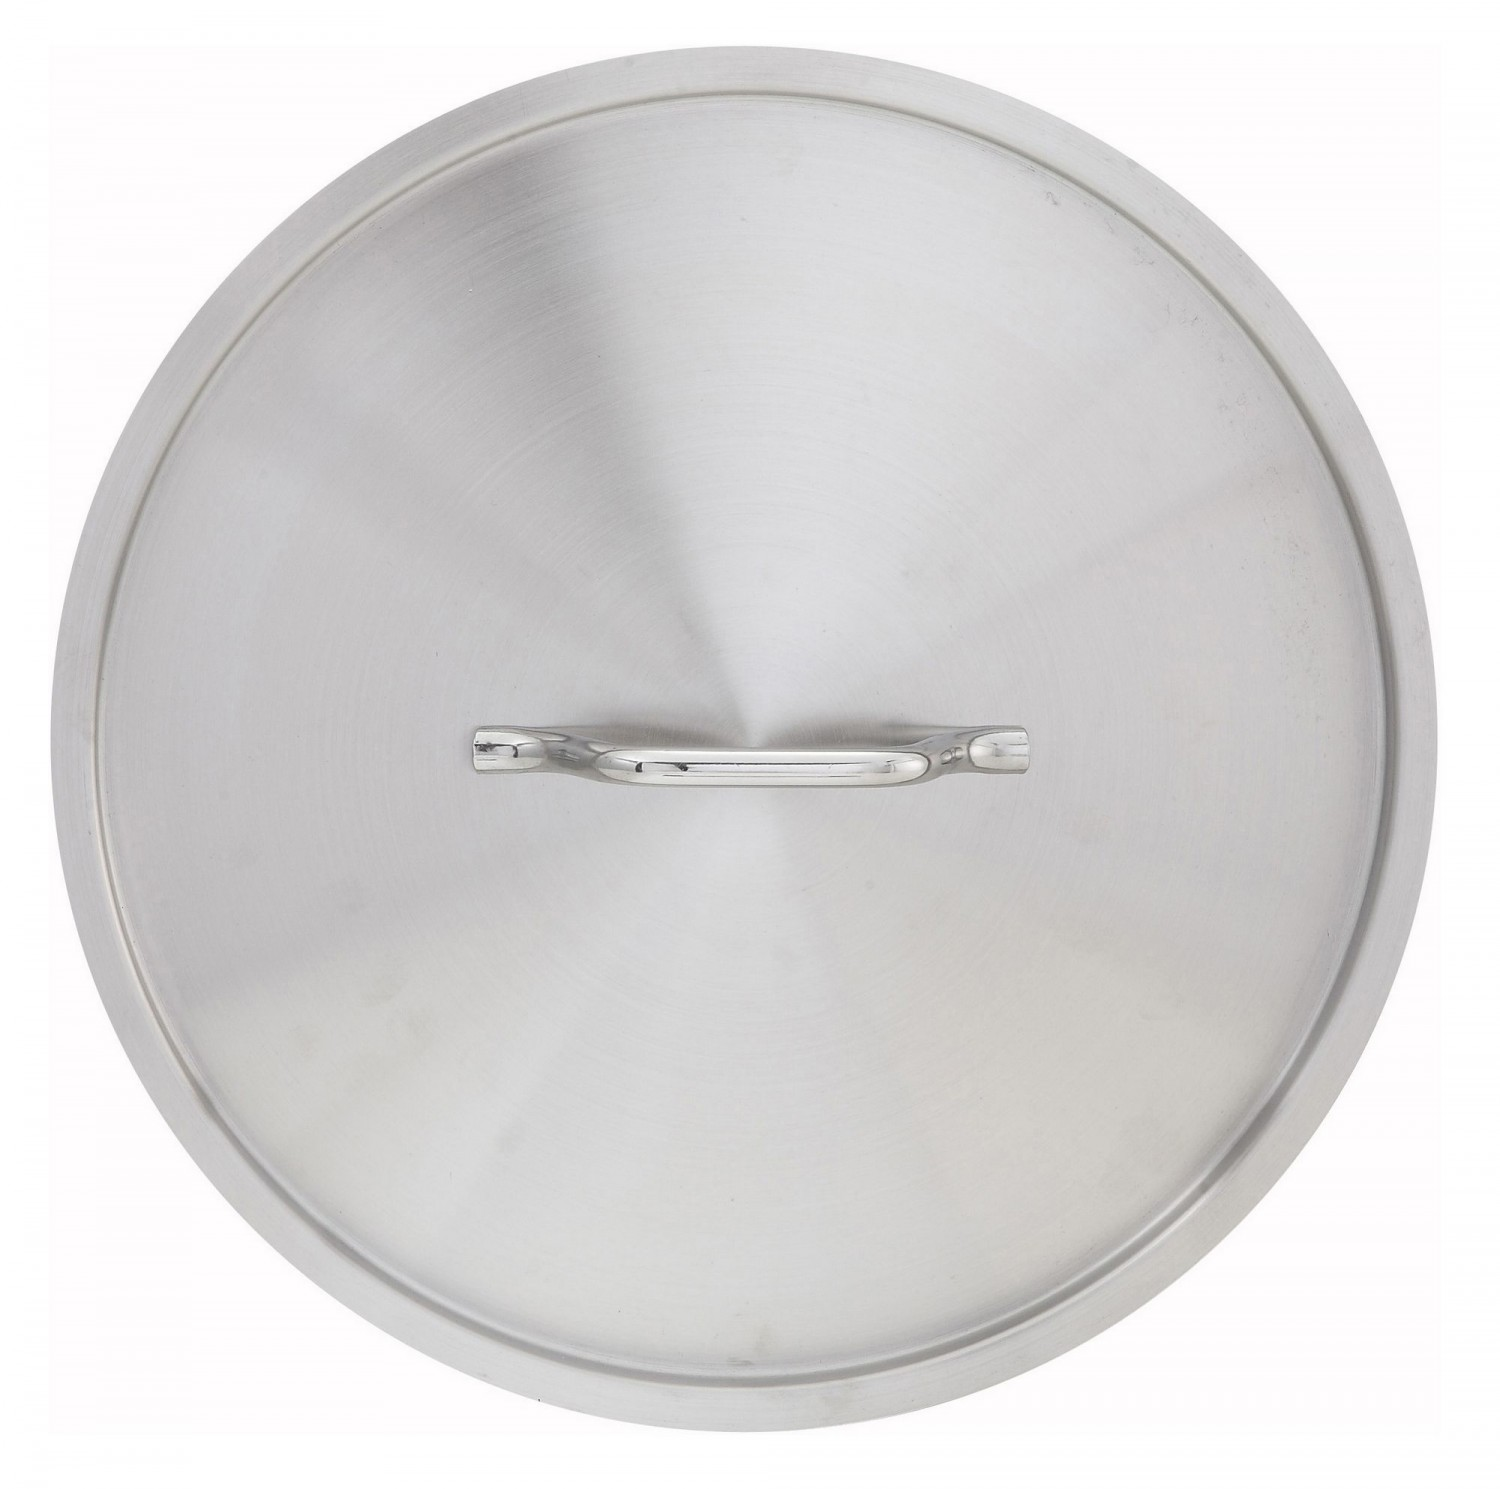 Winco SSTC-10 Stainless Steel Cover for Double Boiler SSDB-12/12S